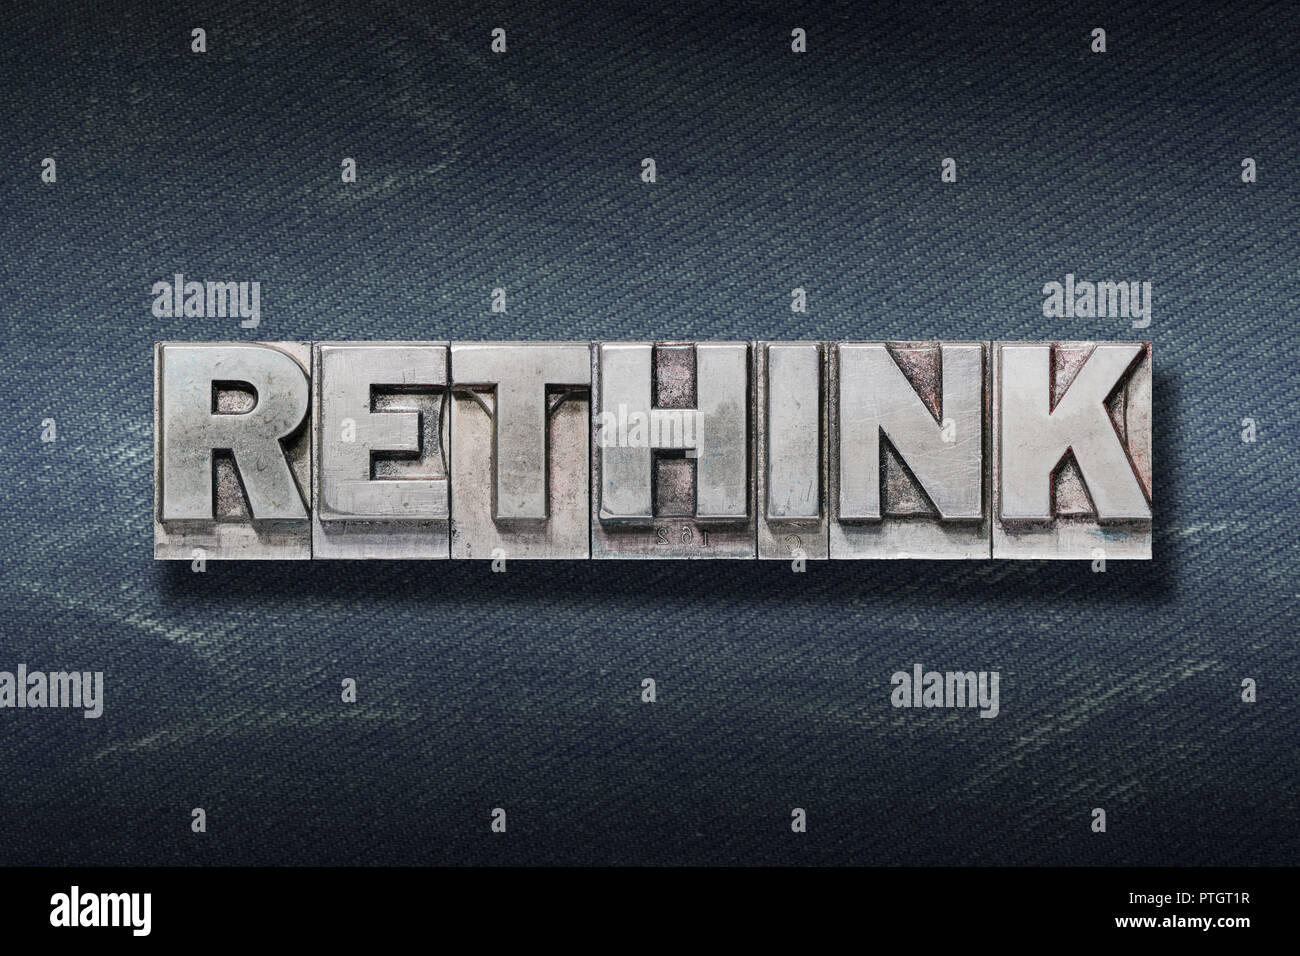 rethink word made from metallic letterpress on dark jeans background - Stock Image